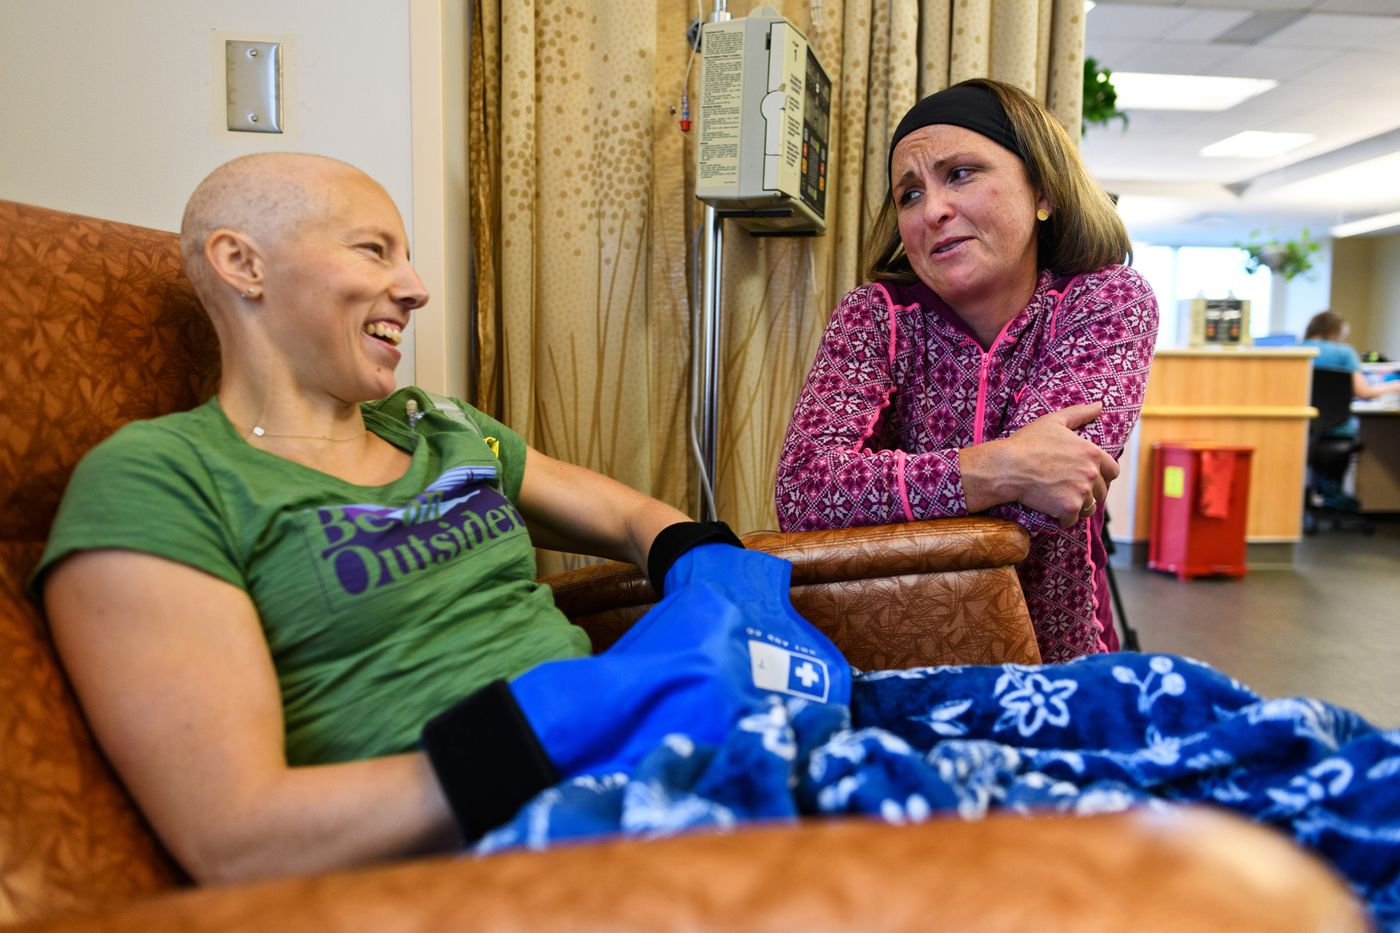 Former Team USA teammate Holly Brooks, right, visits with Kikkan Randall during a chemotherapy treatment at Katmai Oncology Group on August 21, 2018. (Marc Lester / ADN)